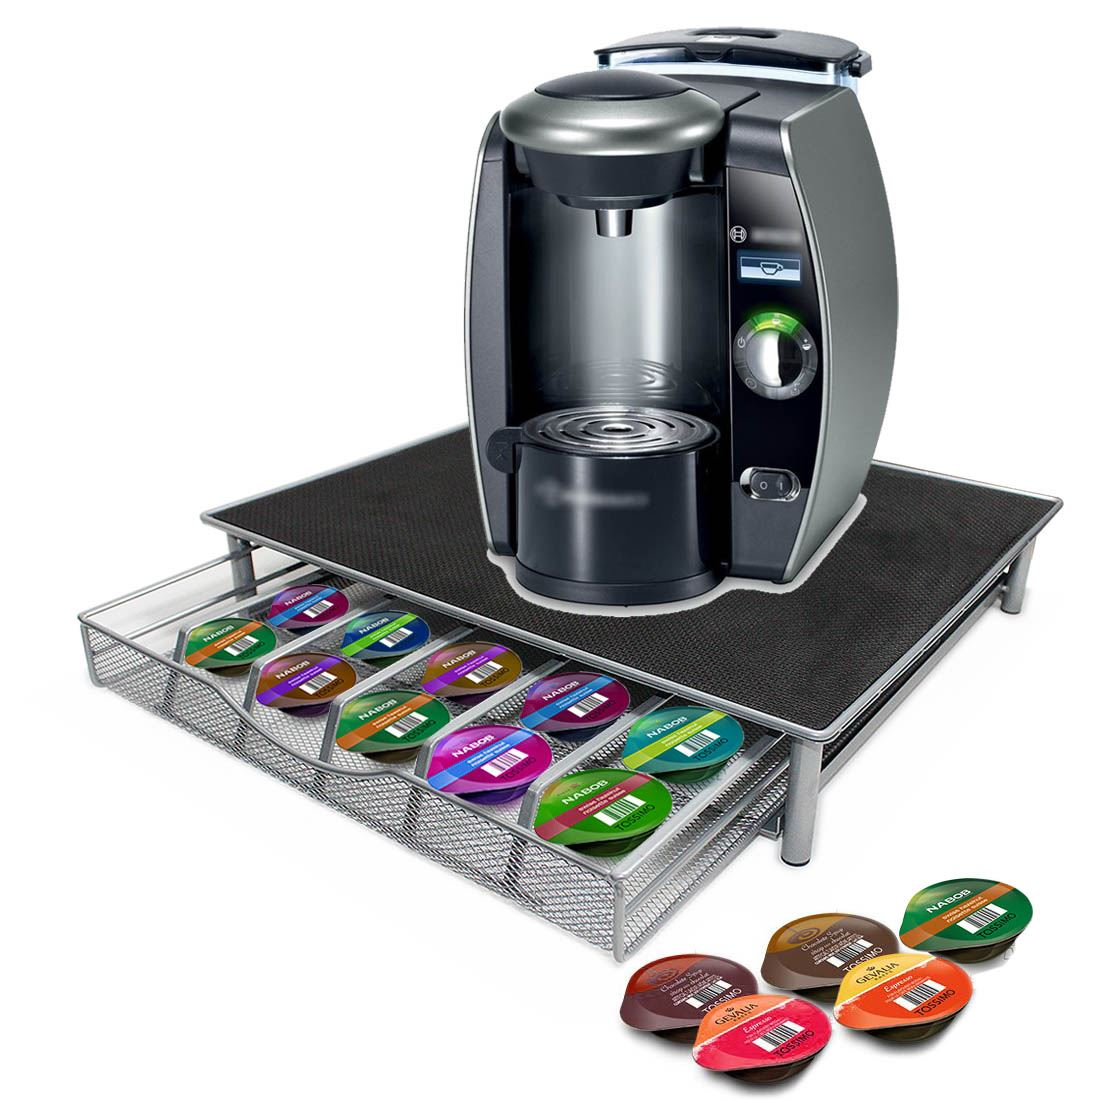 uk coffee machine stand capsule pod nespresso dolce gusto storage drawer ebay. Black Bedroom Furniture Sets. Home Design Ideas